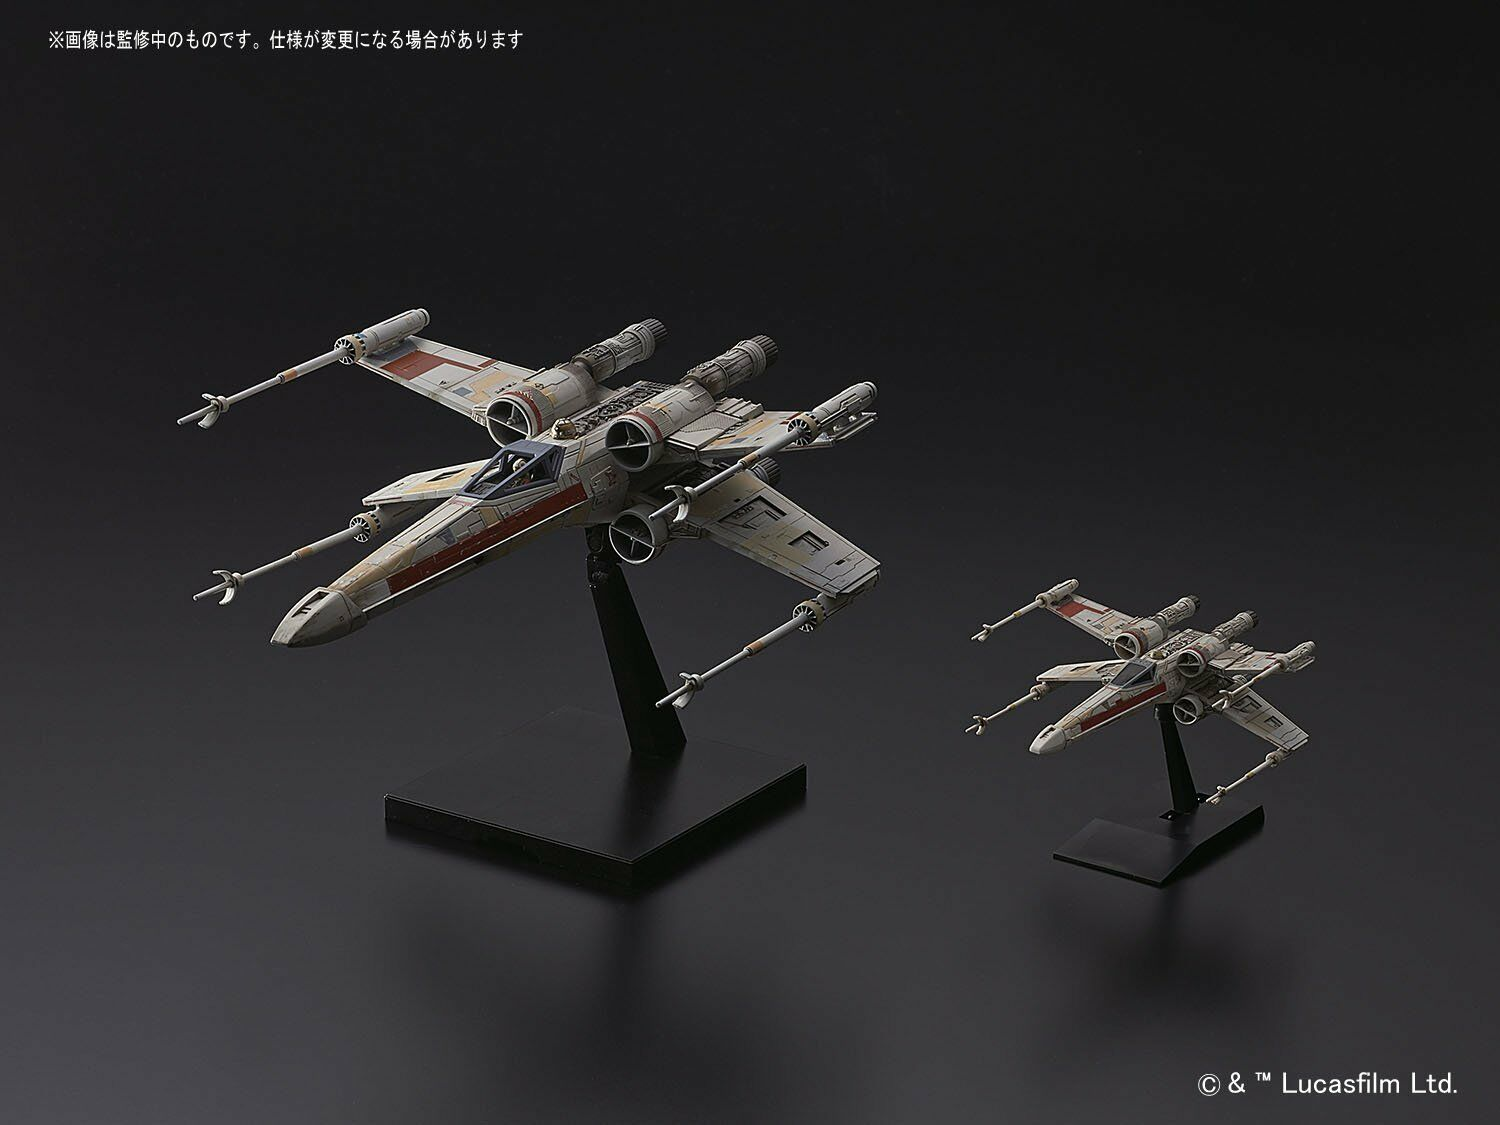 Rogue eins rot squadron  star wars  x-wing starfigter 1   72 + 1   144 zwei modell